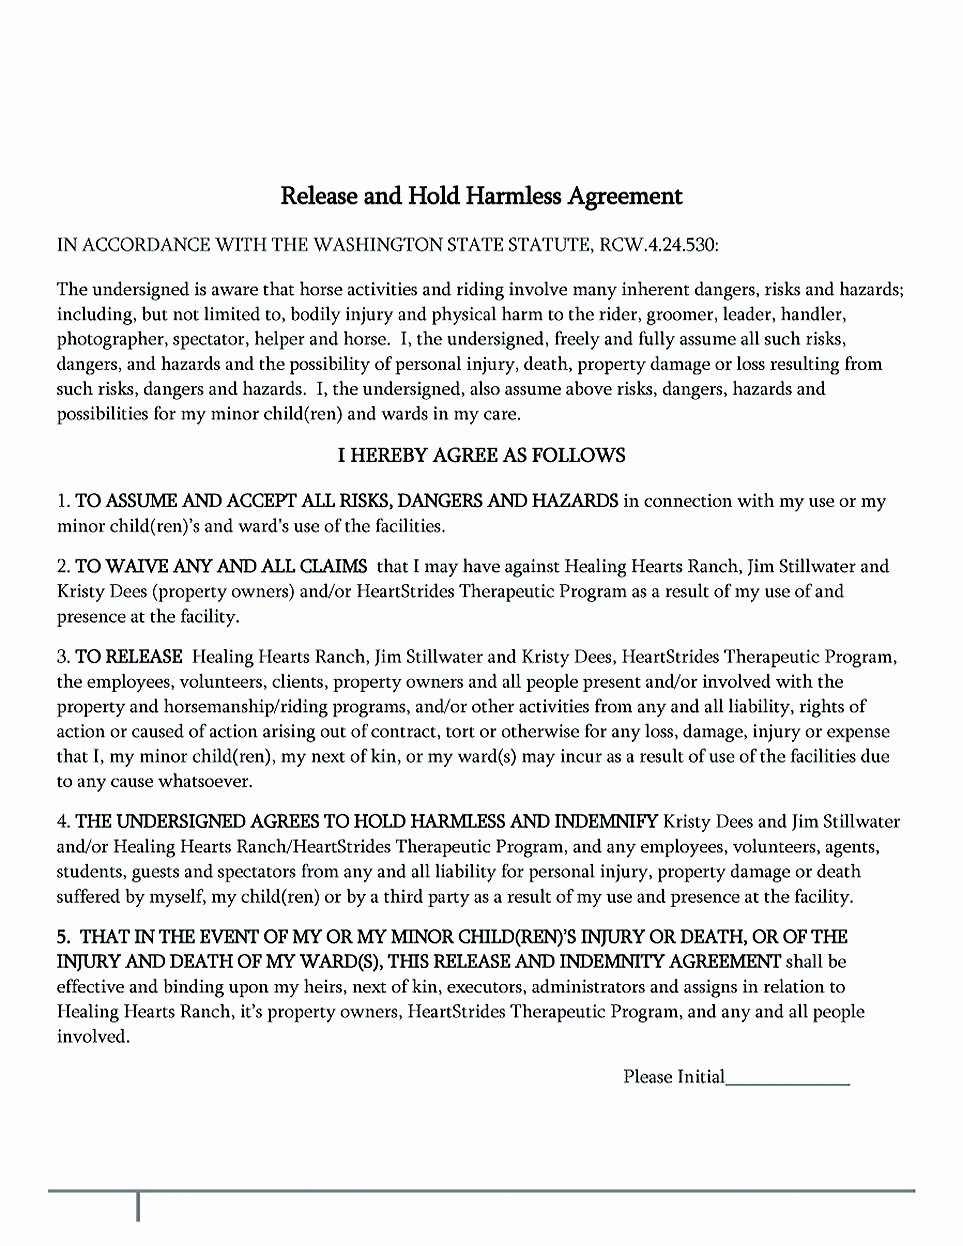 Free Hold Harmless Agreement Template Luxury Making Hold Harmless Agreement Template for Different Purposes